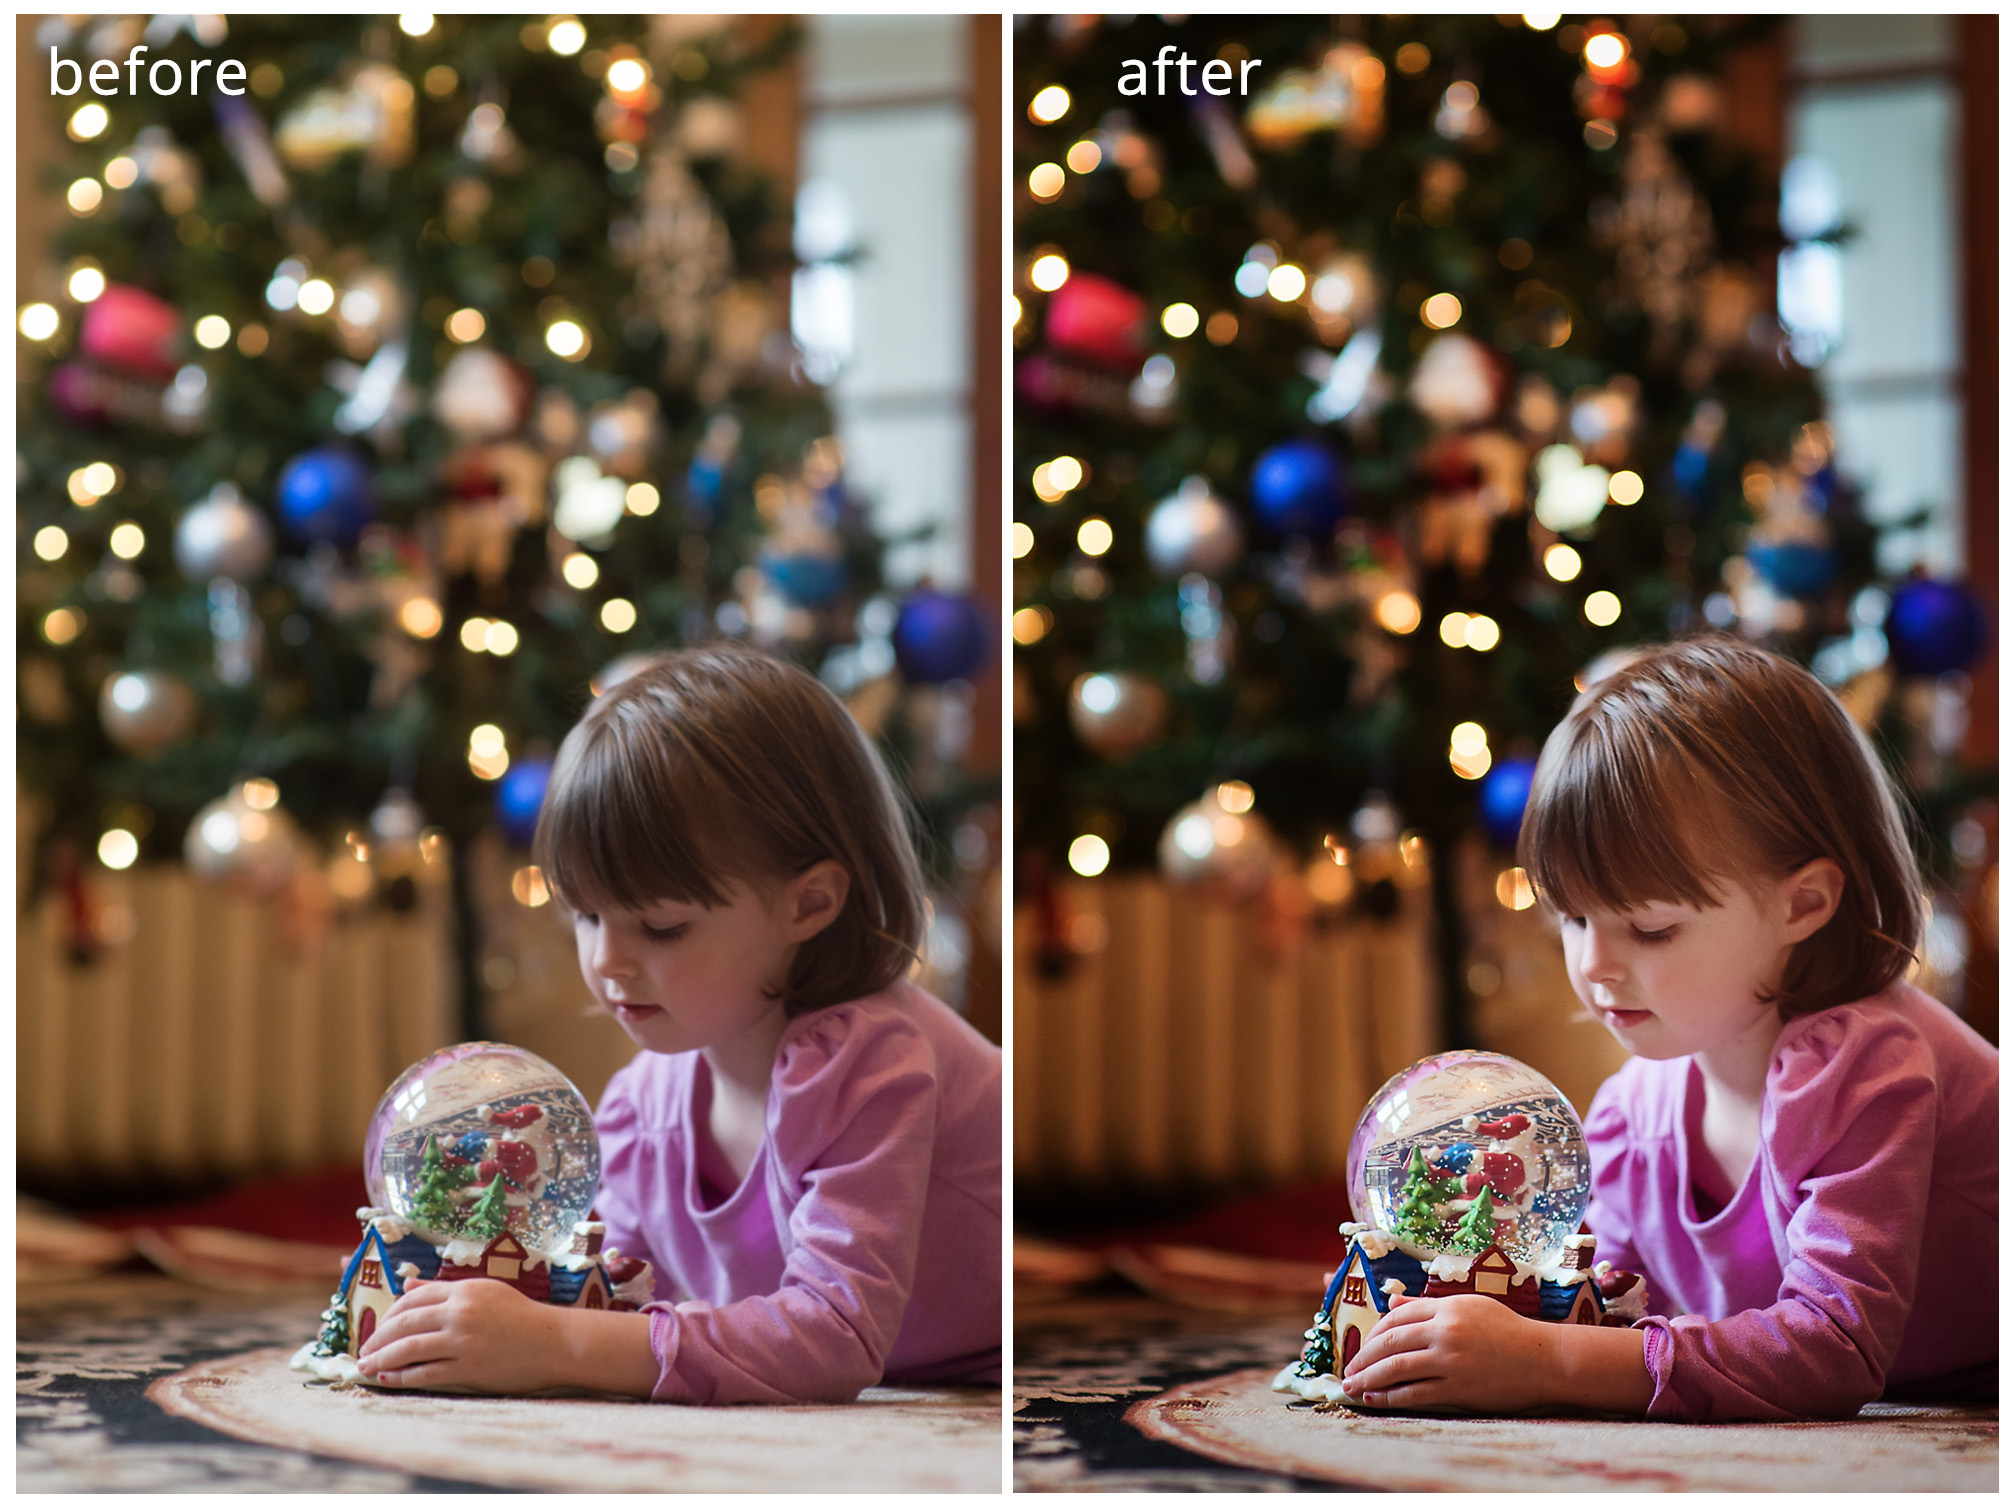 BeforeAfterChristmasTree 5 Tips for Photographing Your Child in Front of a Christmas Tree Guest Bloggers Photo Sharing & Inspiration Photography Tips Photoshop Tips & Tutorials